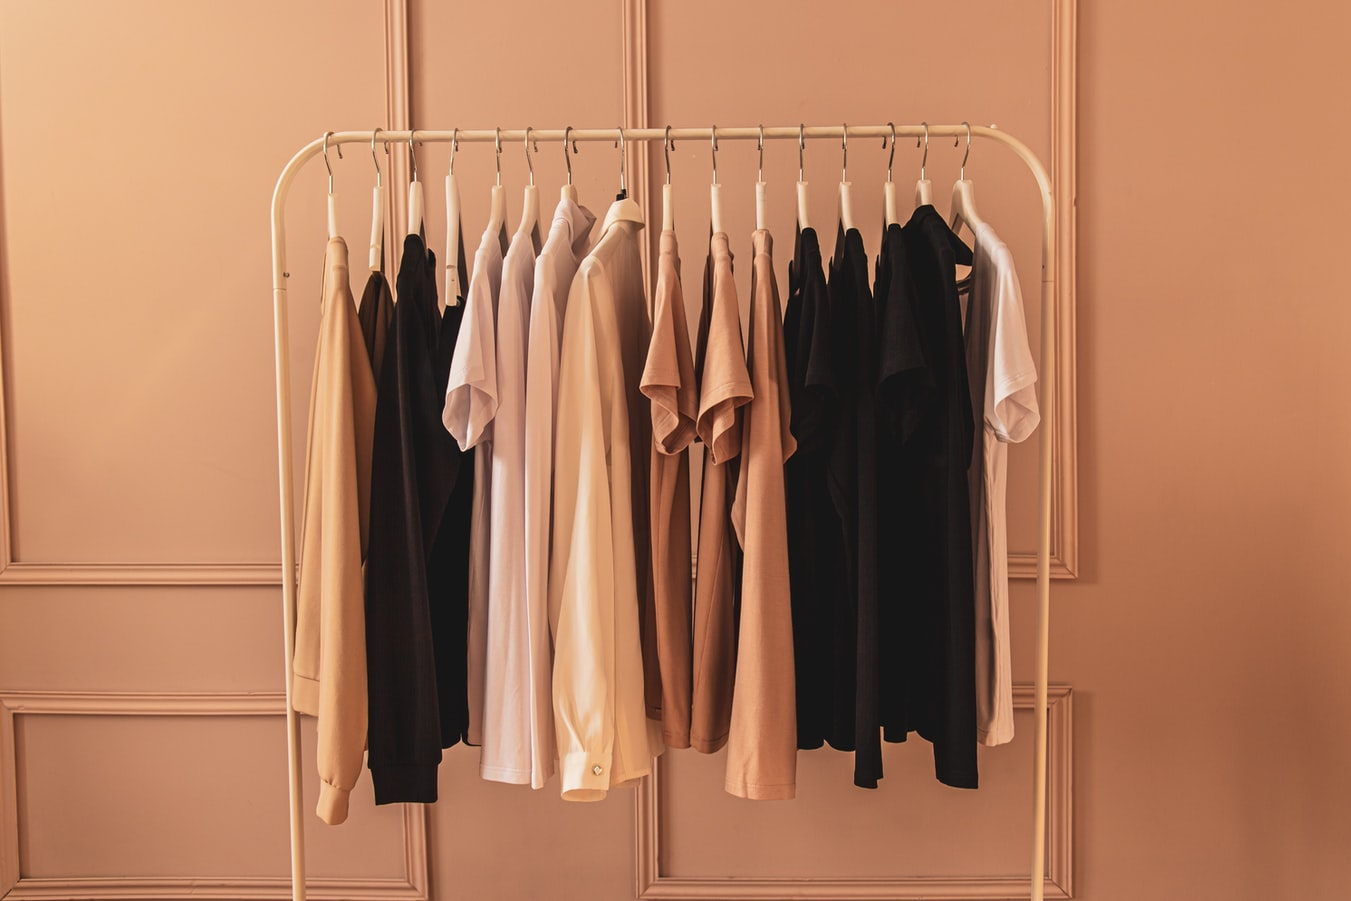 Button up shirts hanging on a rack Photo by piotr szulawski on Unsplash